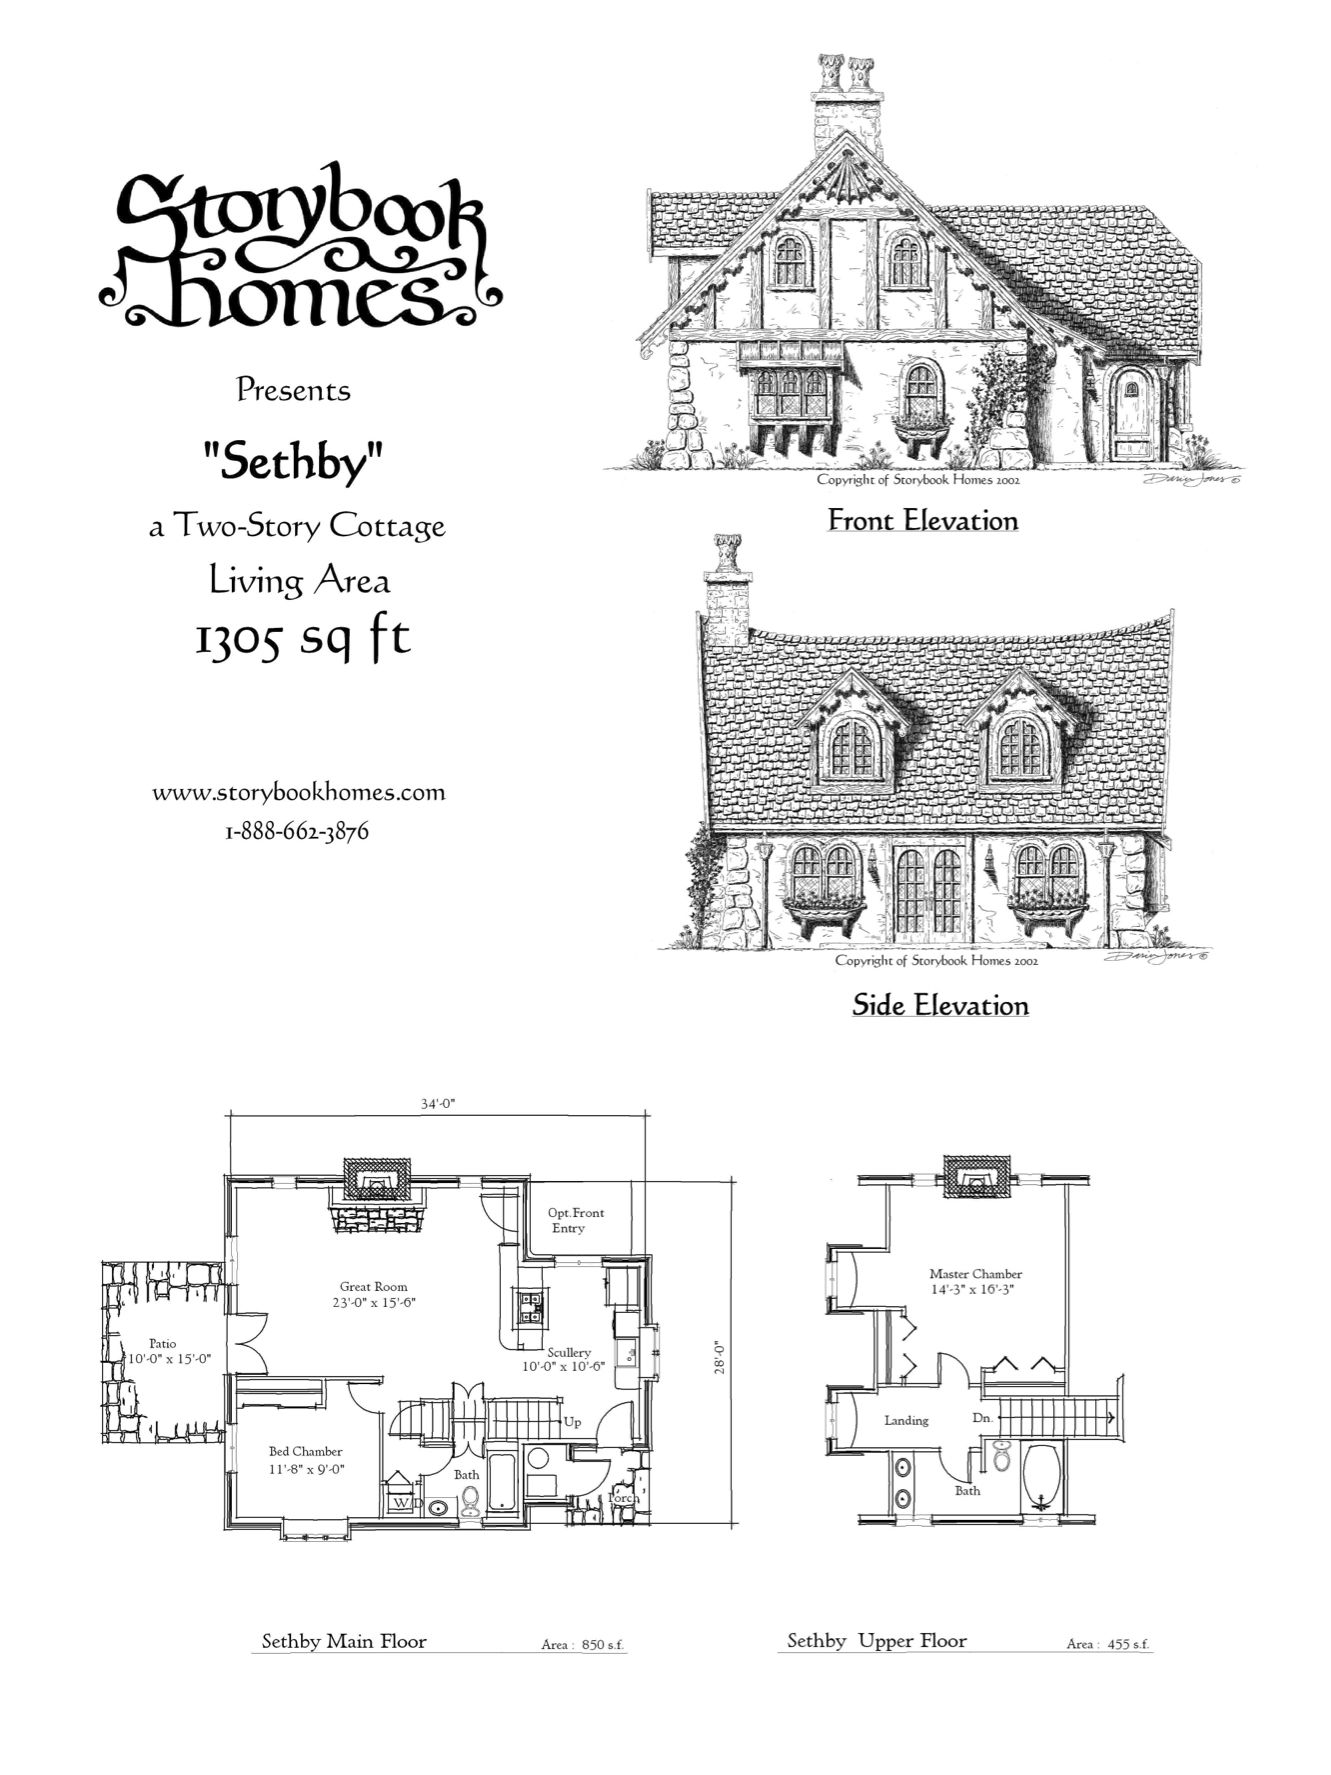 Pin By Valerie Mckeon On Ancestry Storybook House Plan Cottage Floor Plans Storybook Homes